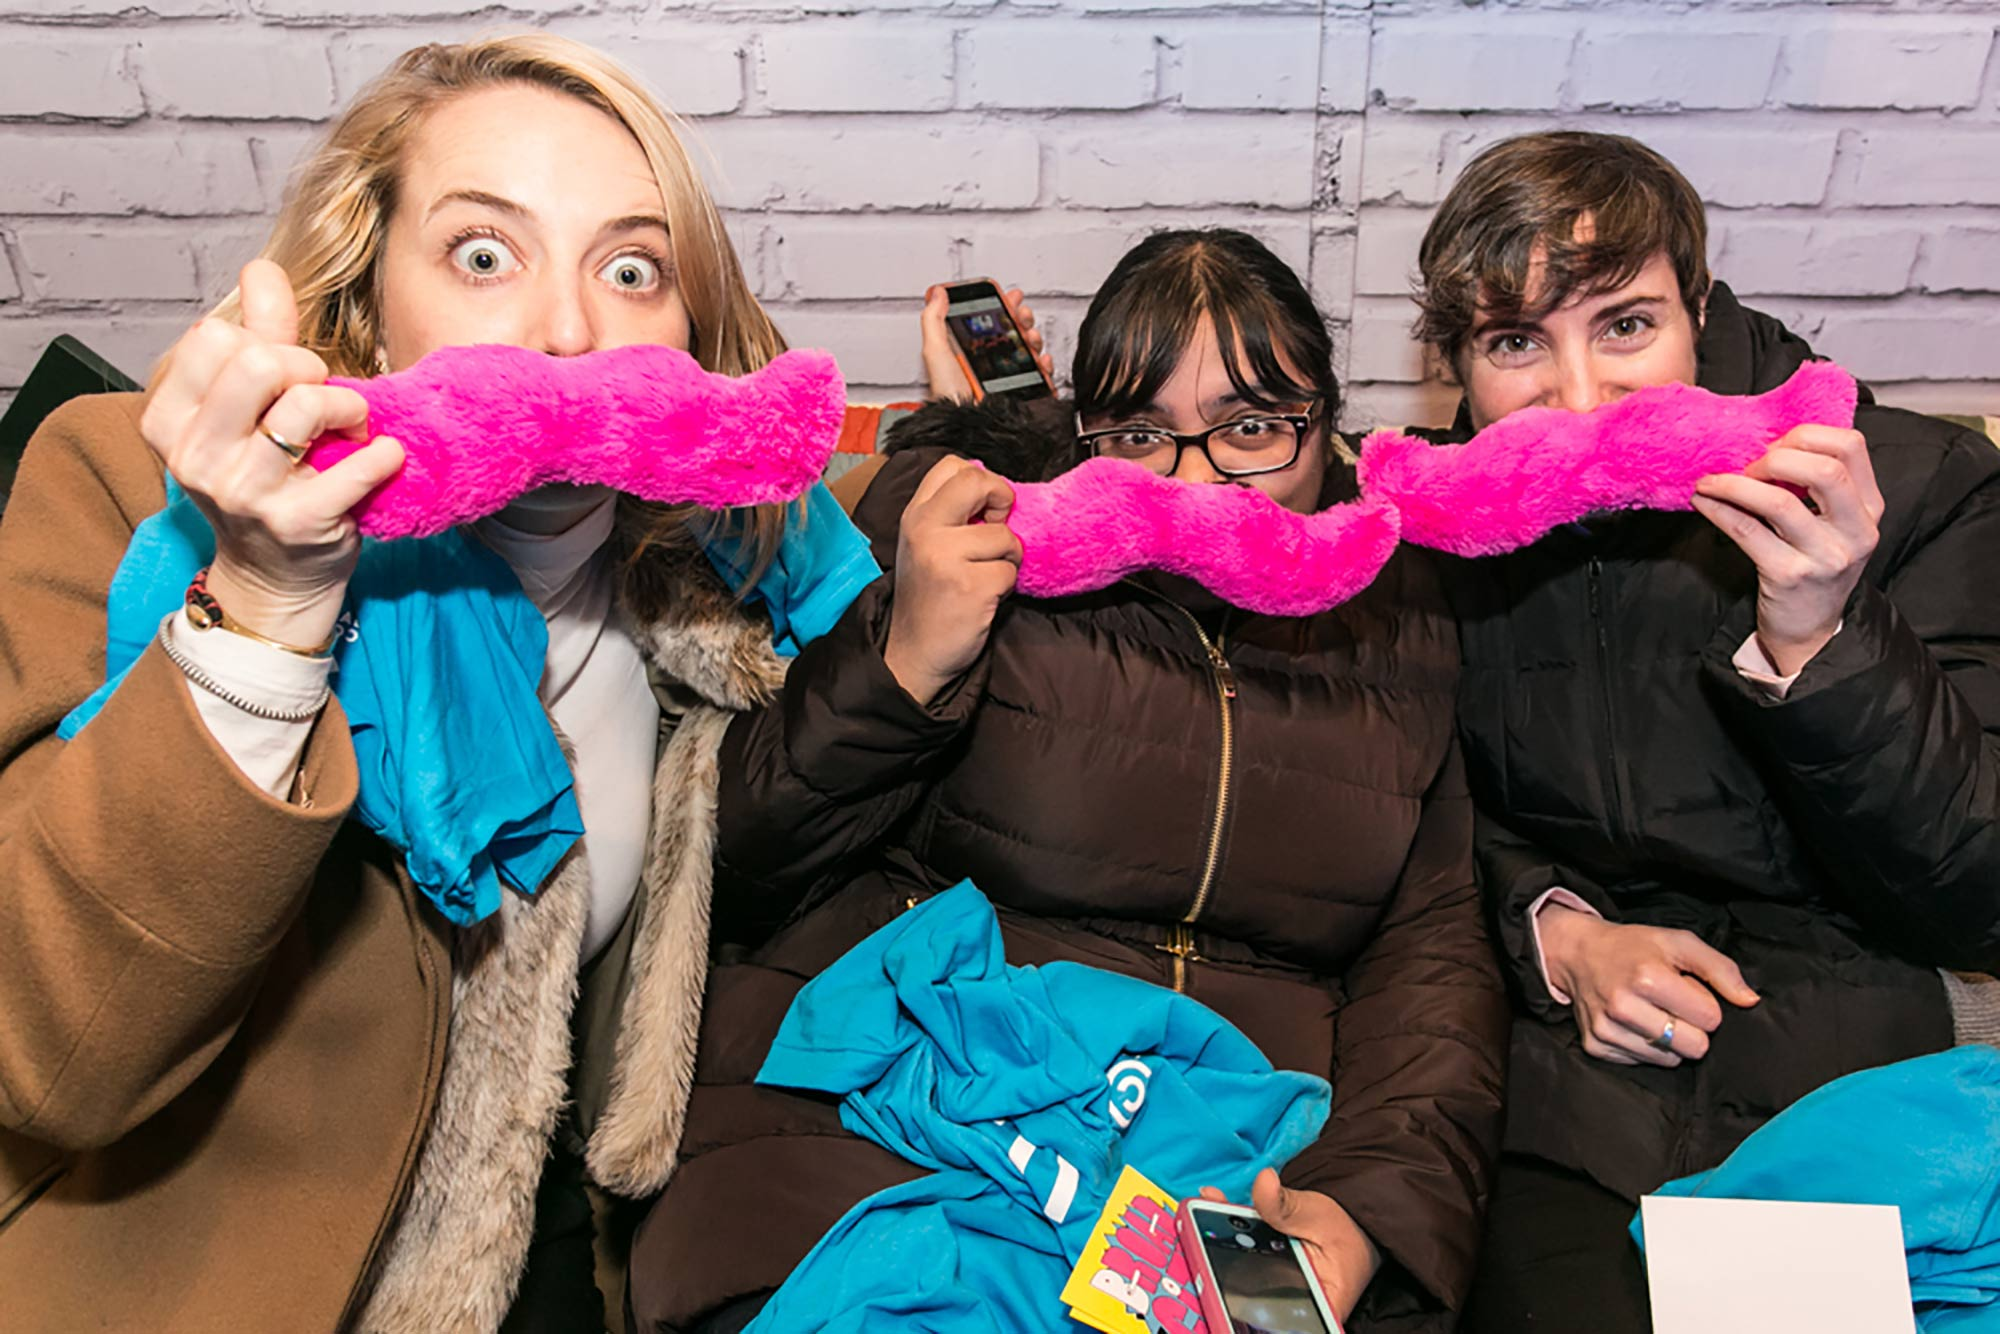 Lyft's fuzzy pink mustaches made for perfect photo props on board Comedy Central's Broad City RV.